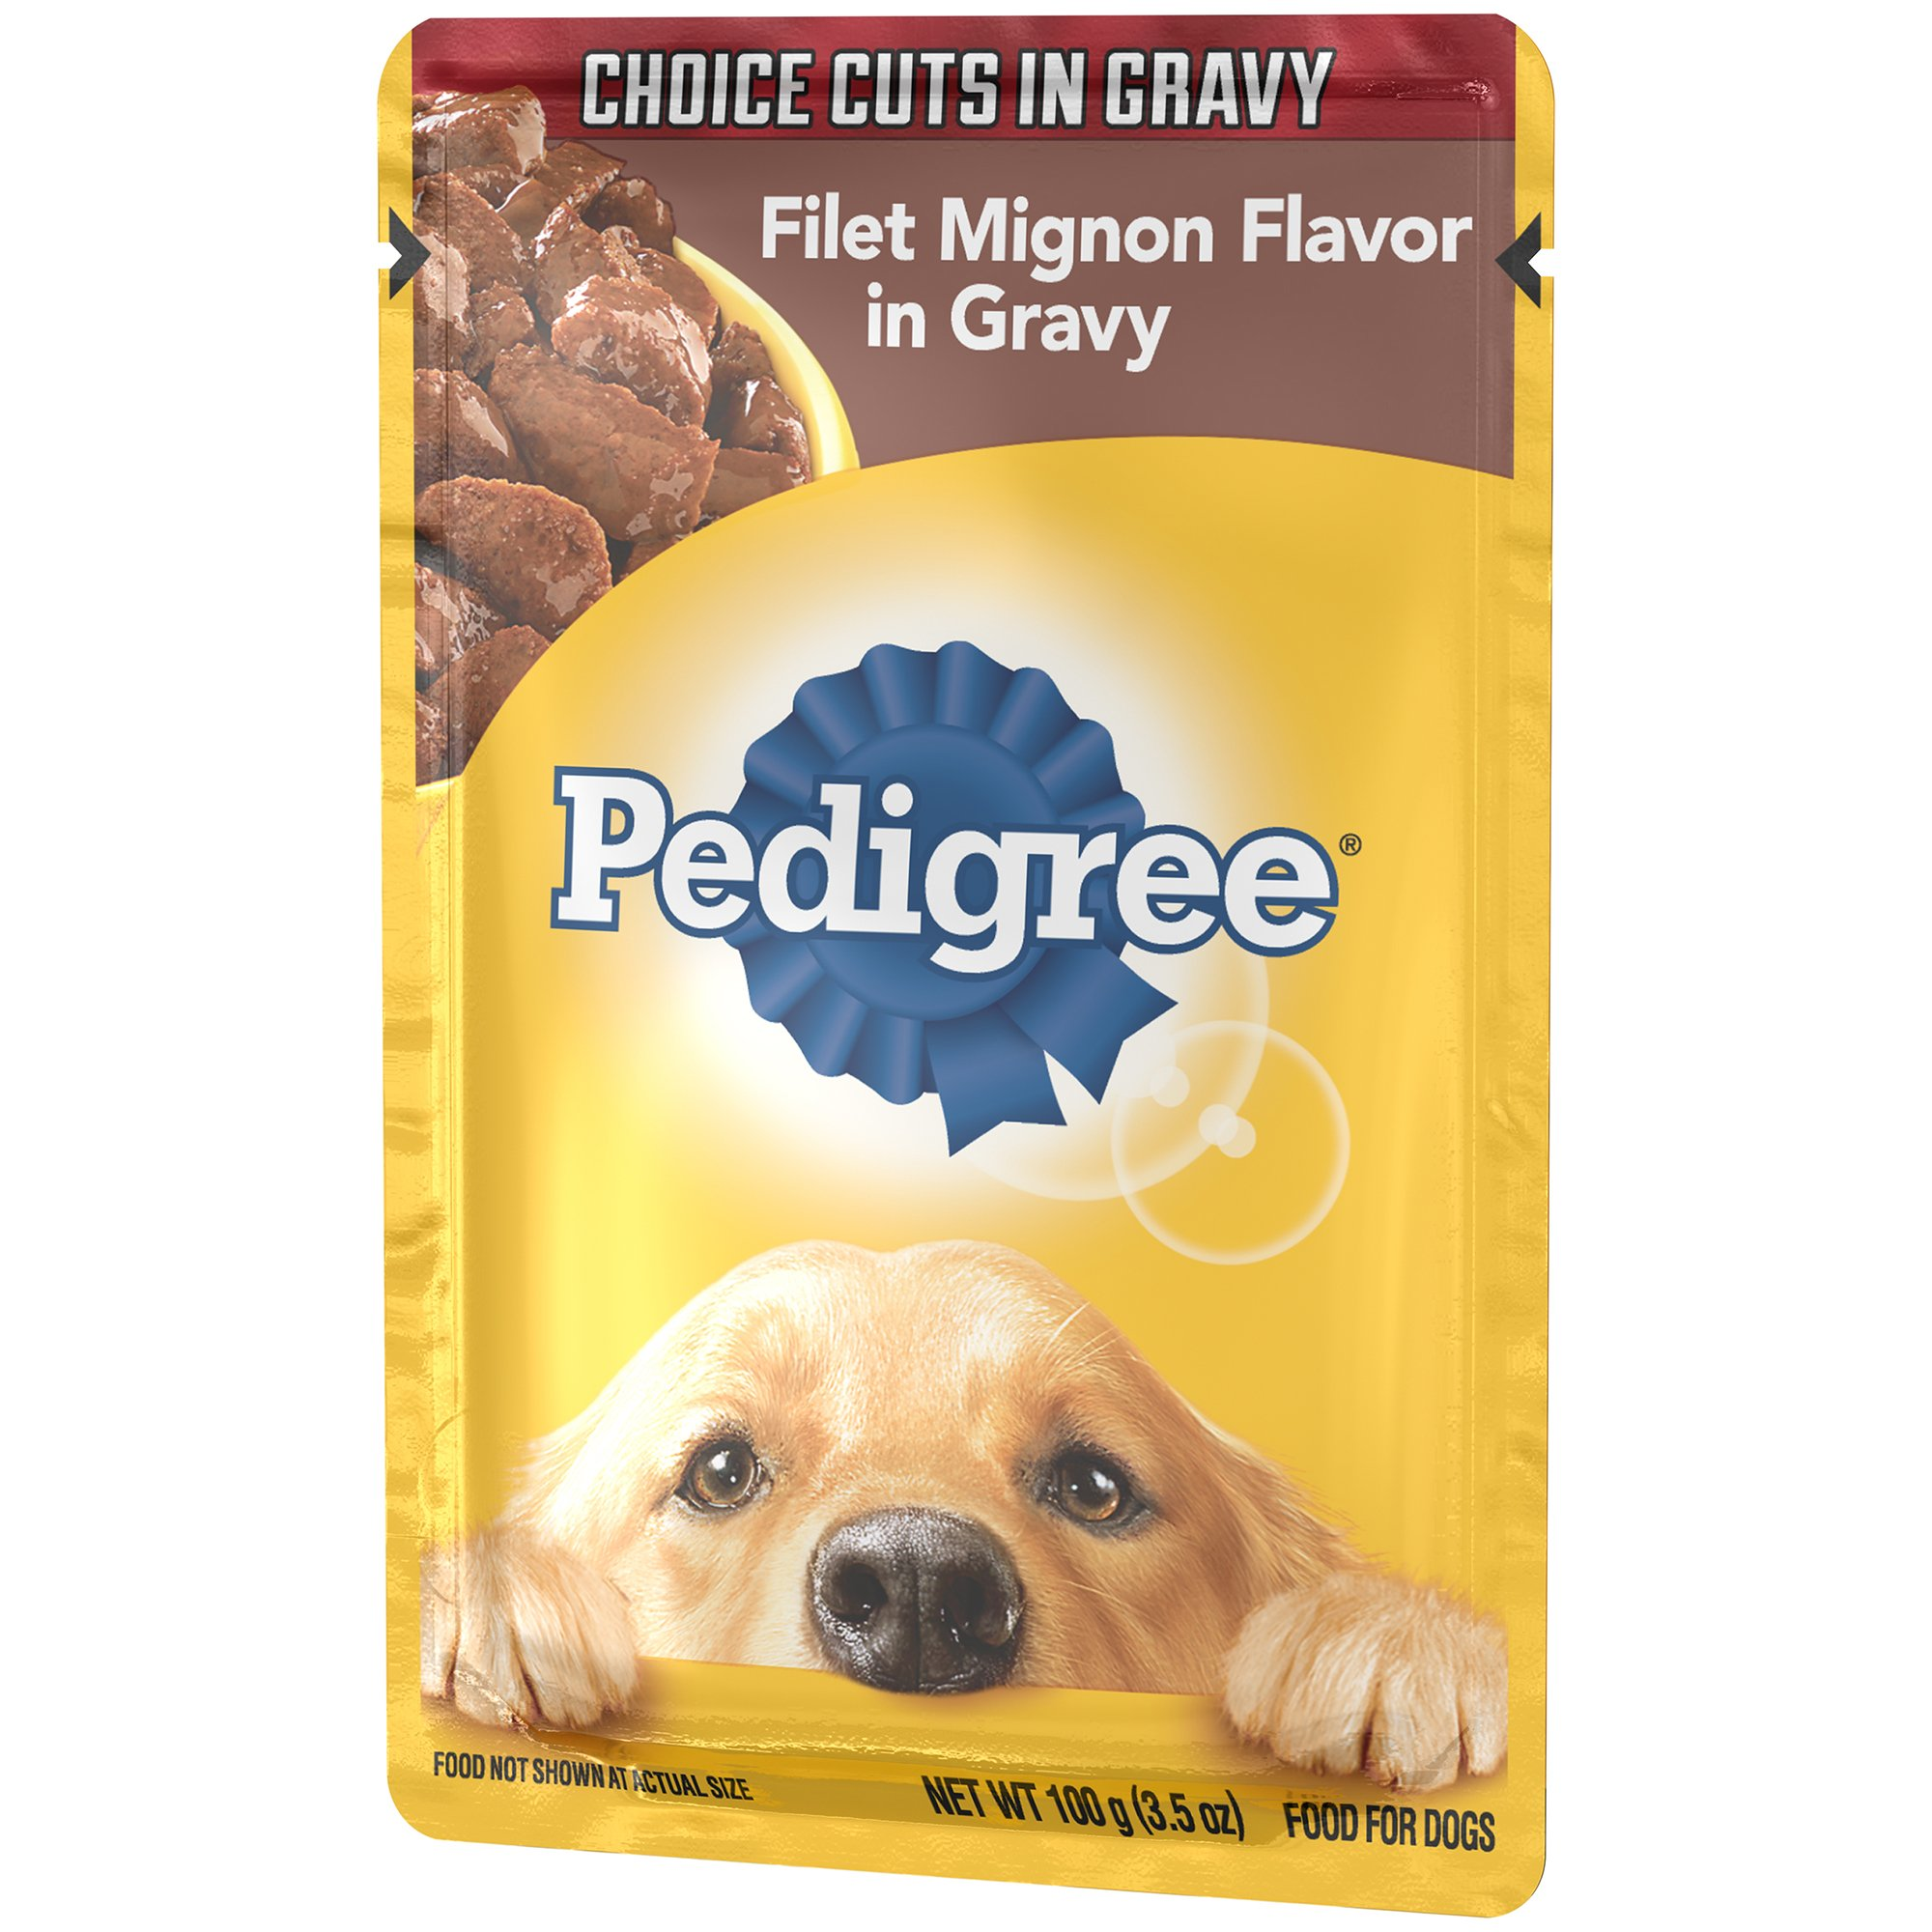 Pedigree Dog Food Online Coupons